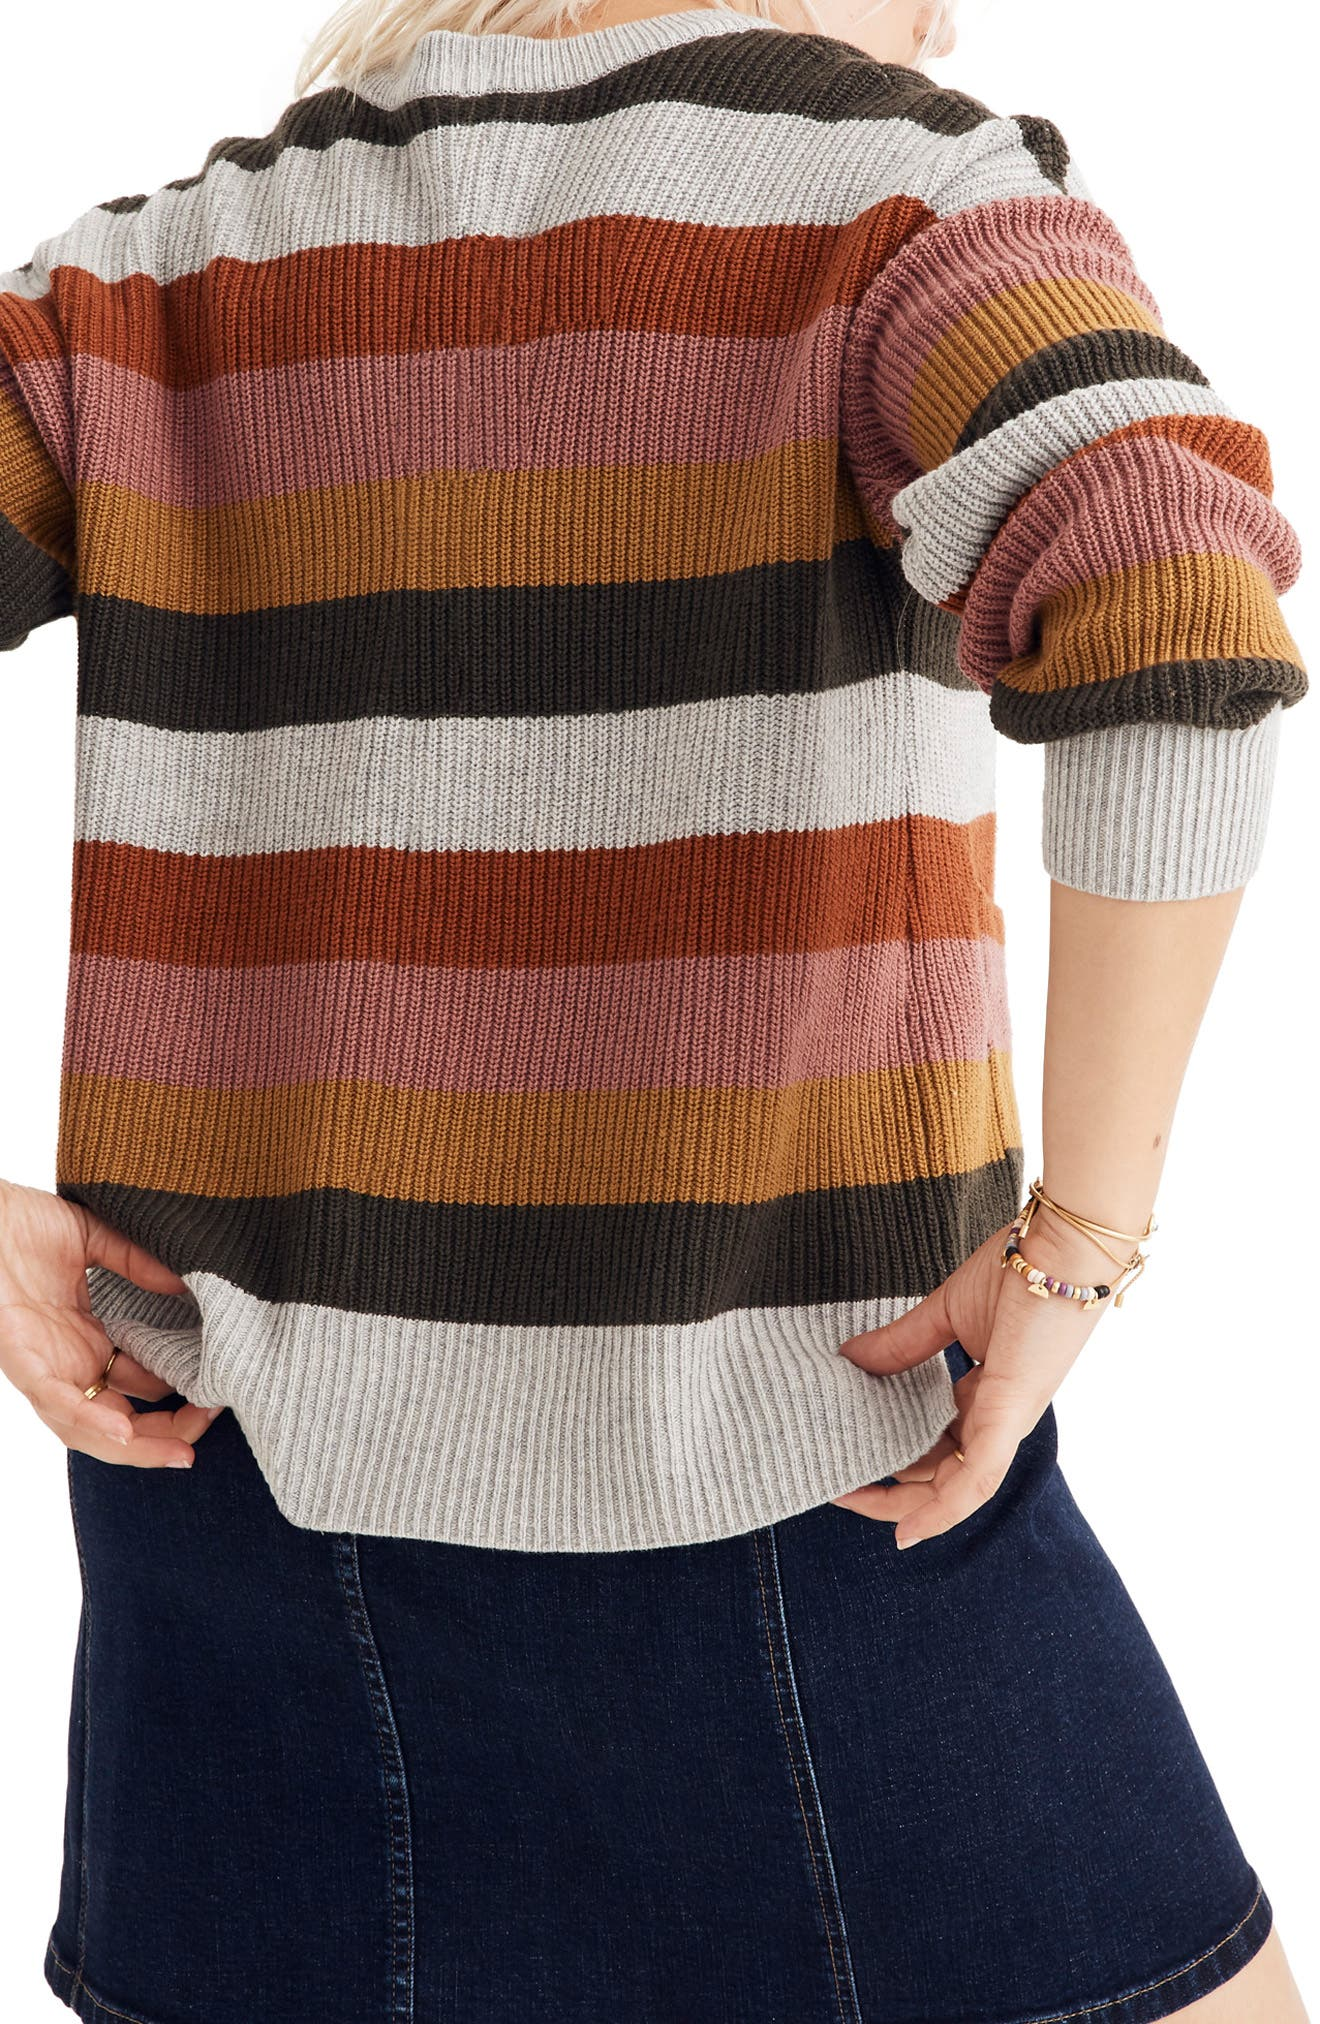 Patch Pocket Pullover Sweater,                             Alternate thumbnail 3, color,                             ARCTIC ICE